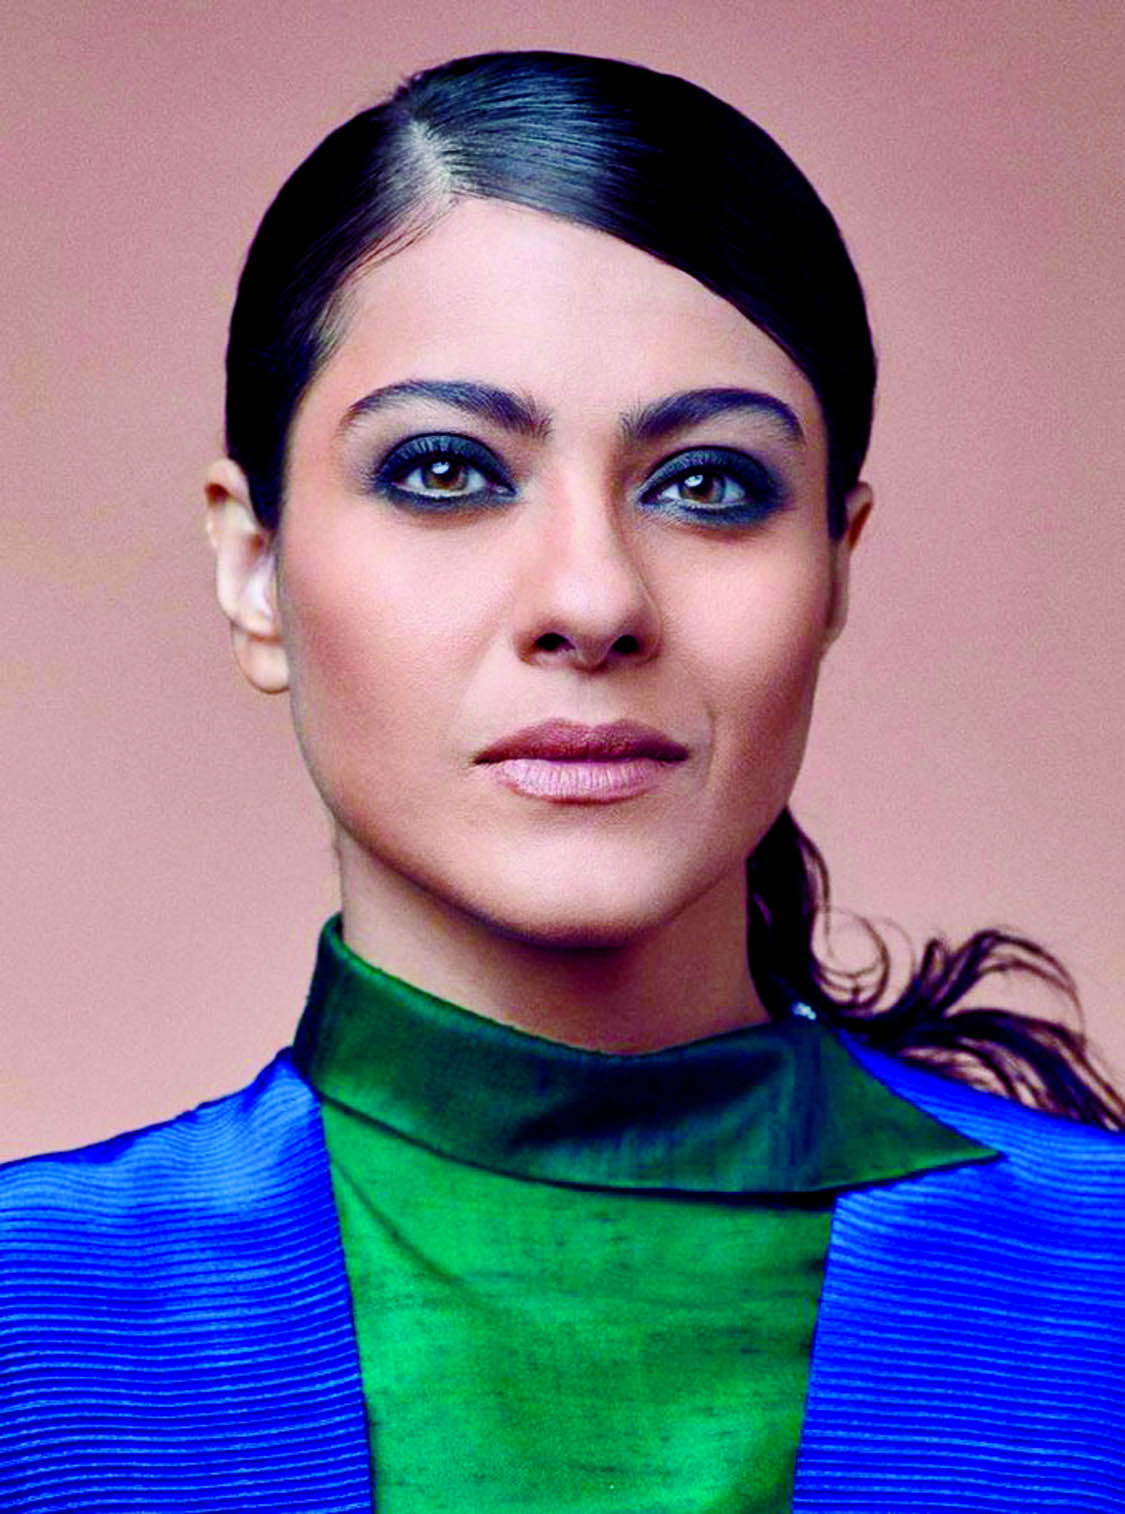 Kajol urges fans to see VIP 2 in new Instagram video